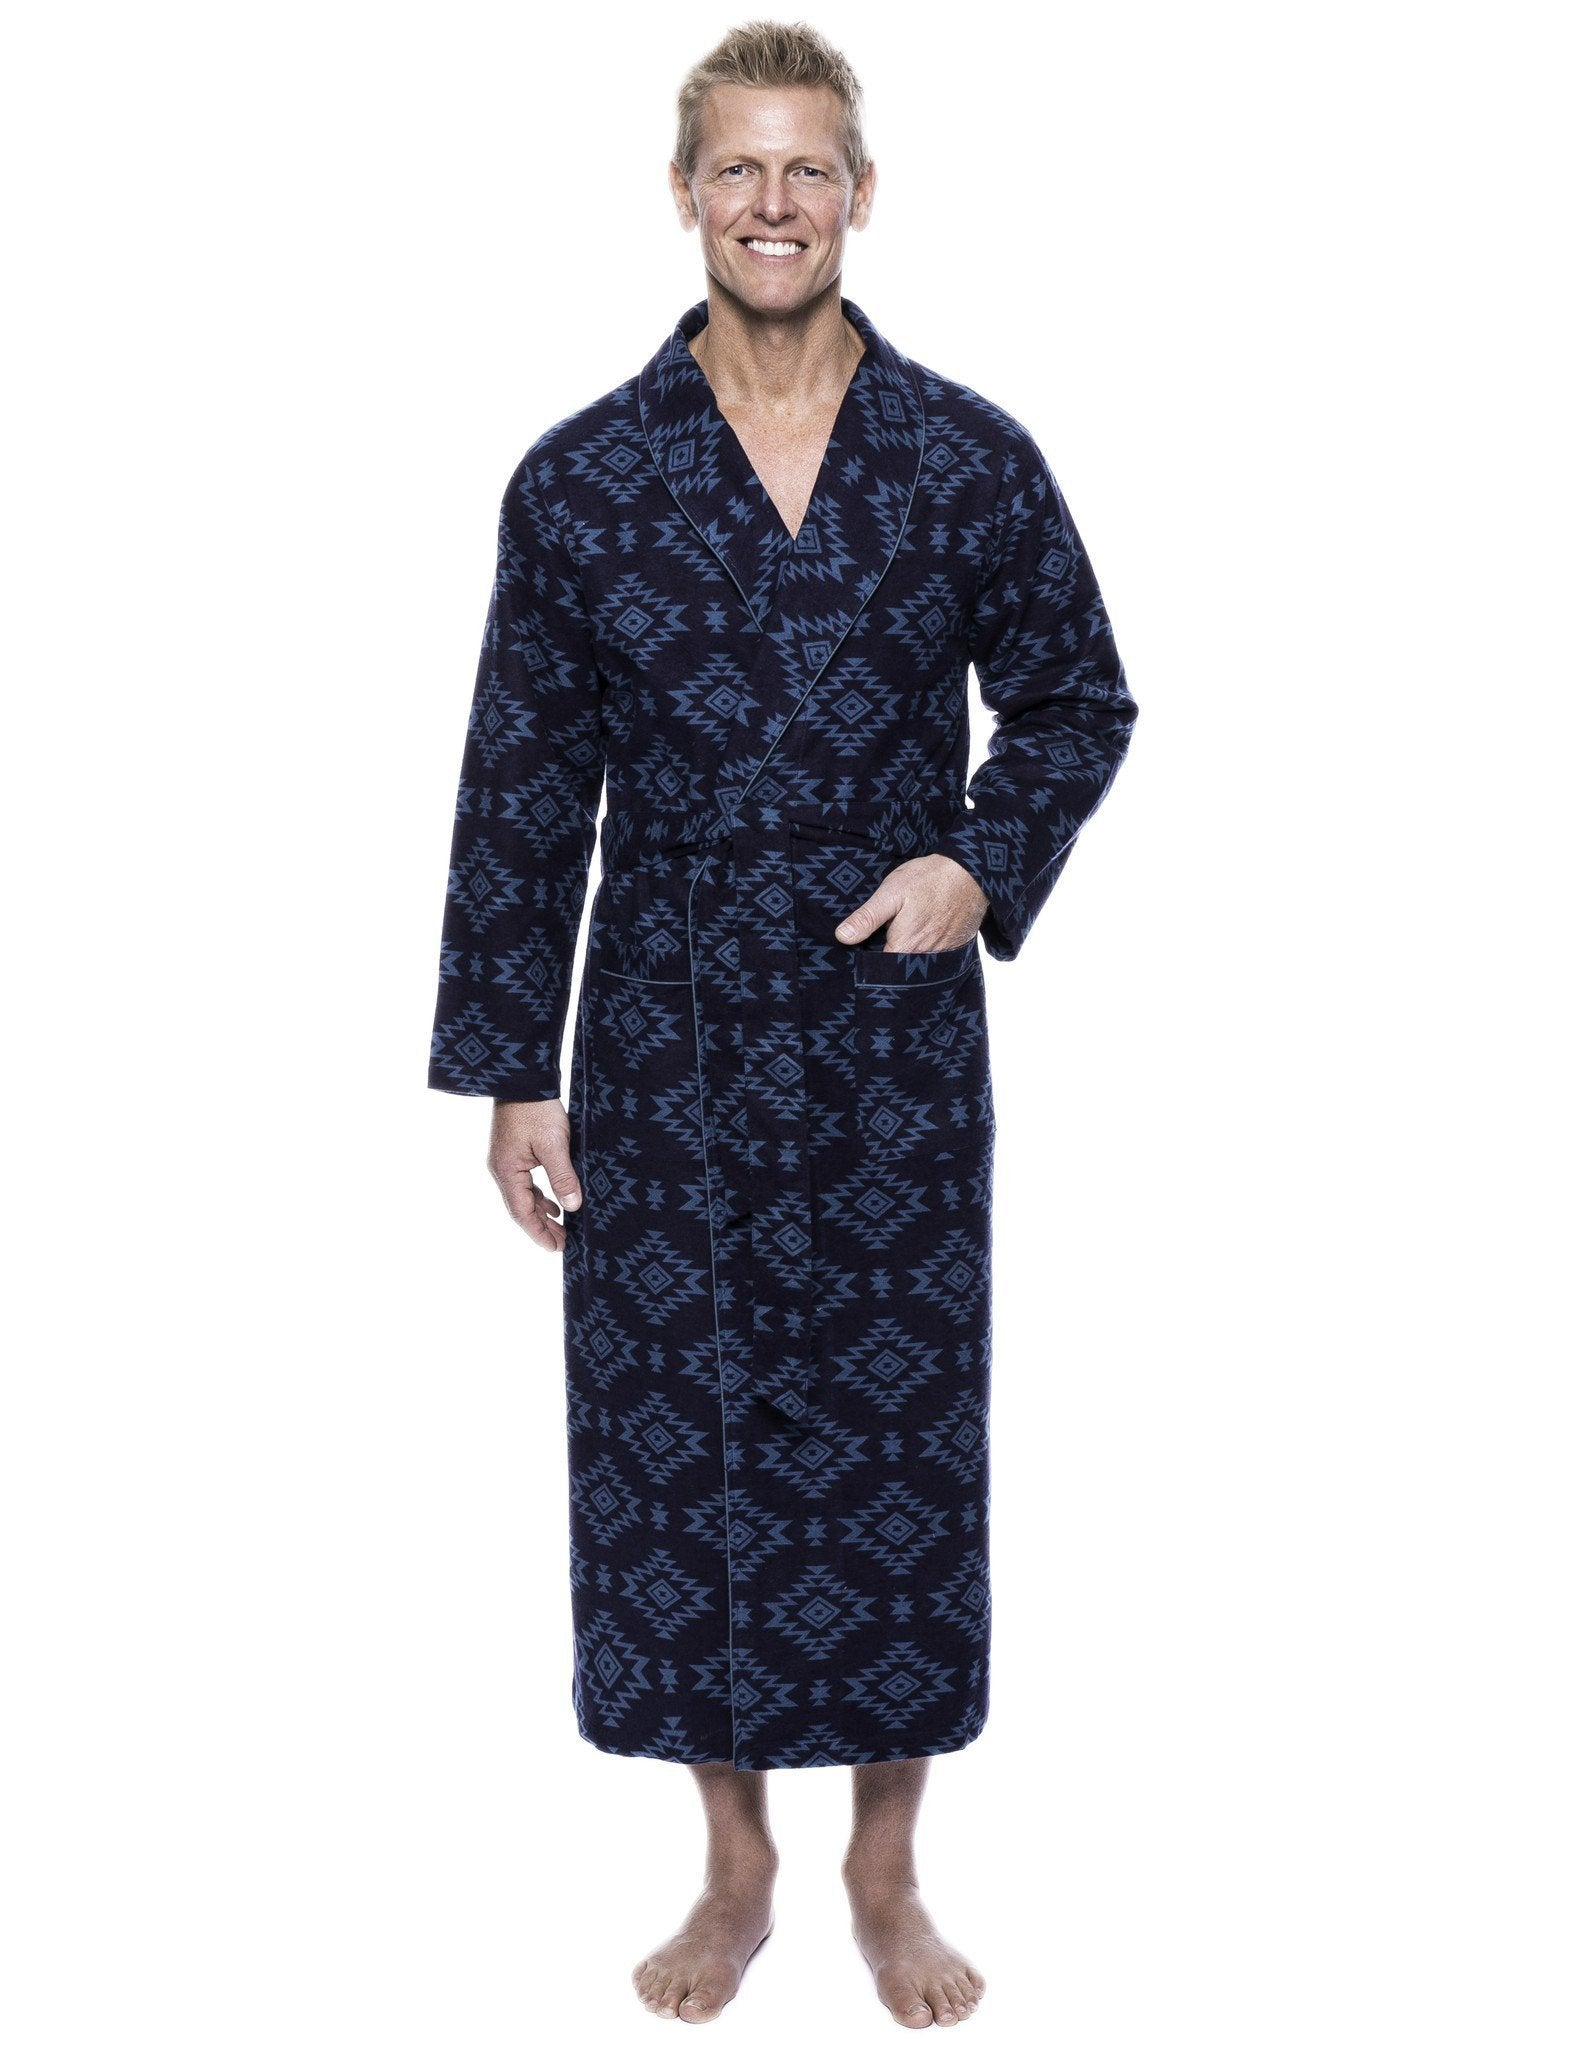 Men's 100% Cotton Thick Flannel Long Robe - Aztec Navy/Teal